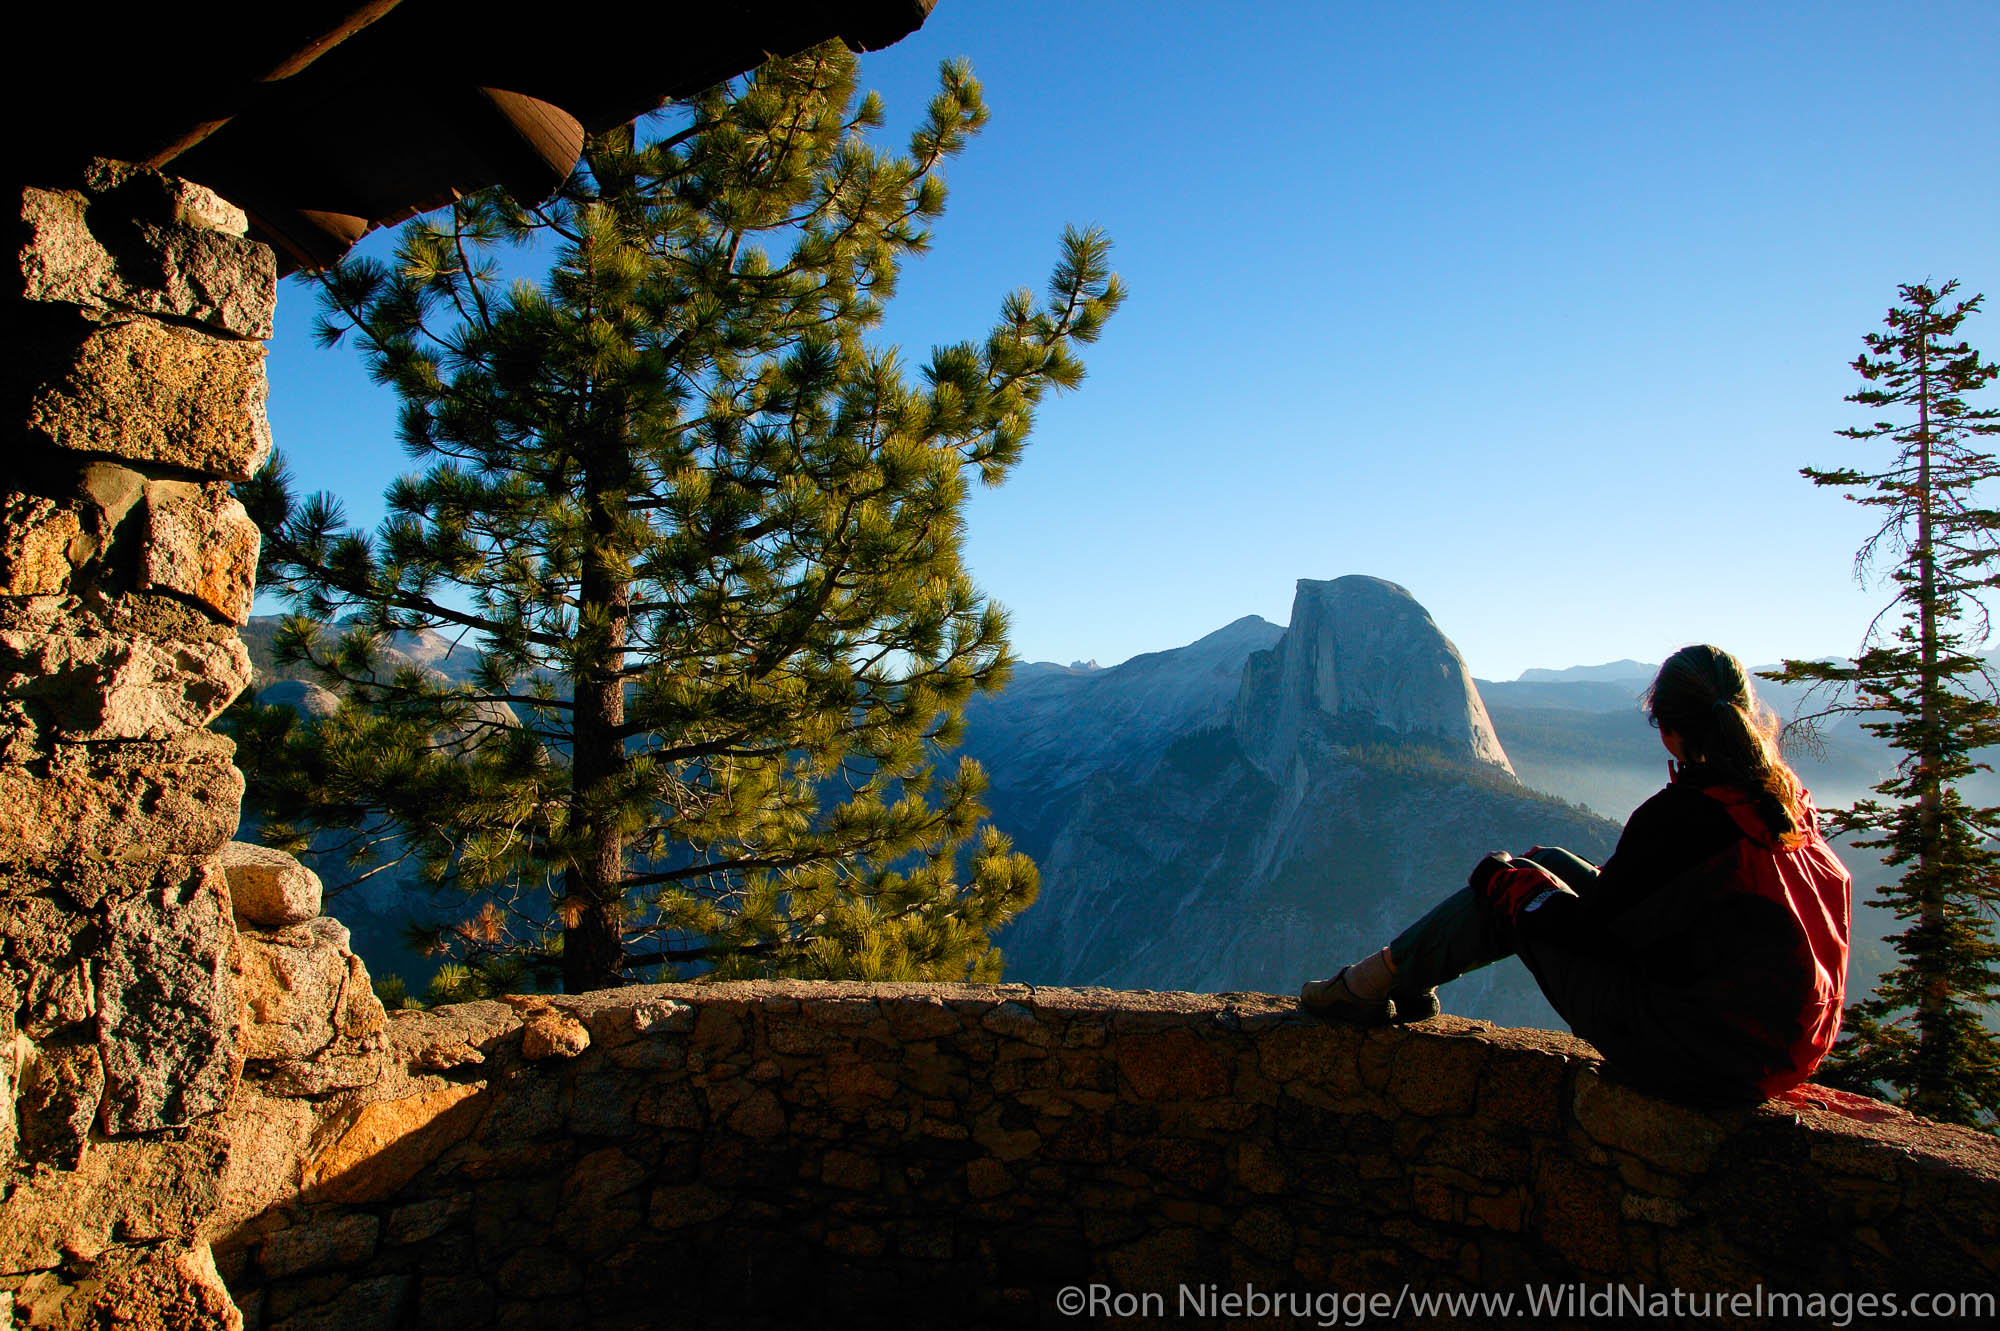 A visitor (MR) views Half Dome from Glacier Point, Yosemite National Park, California.  Model Released.